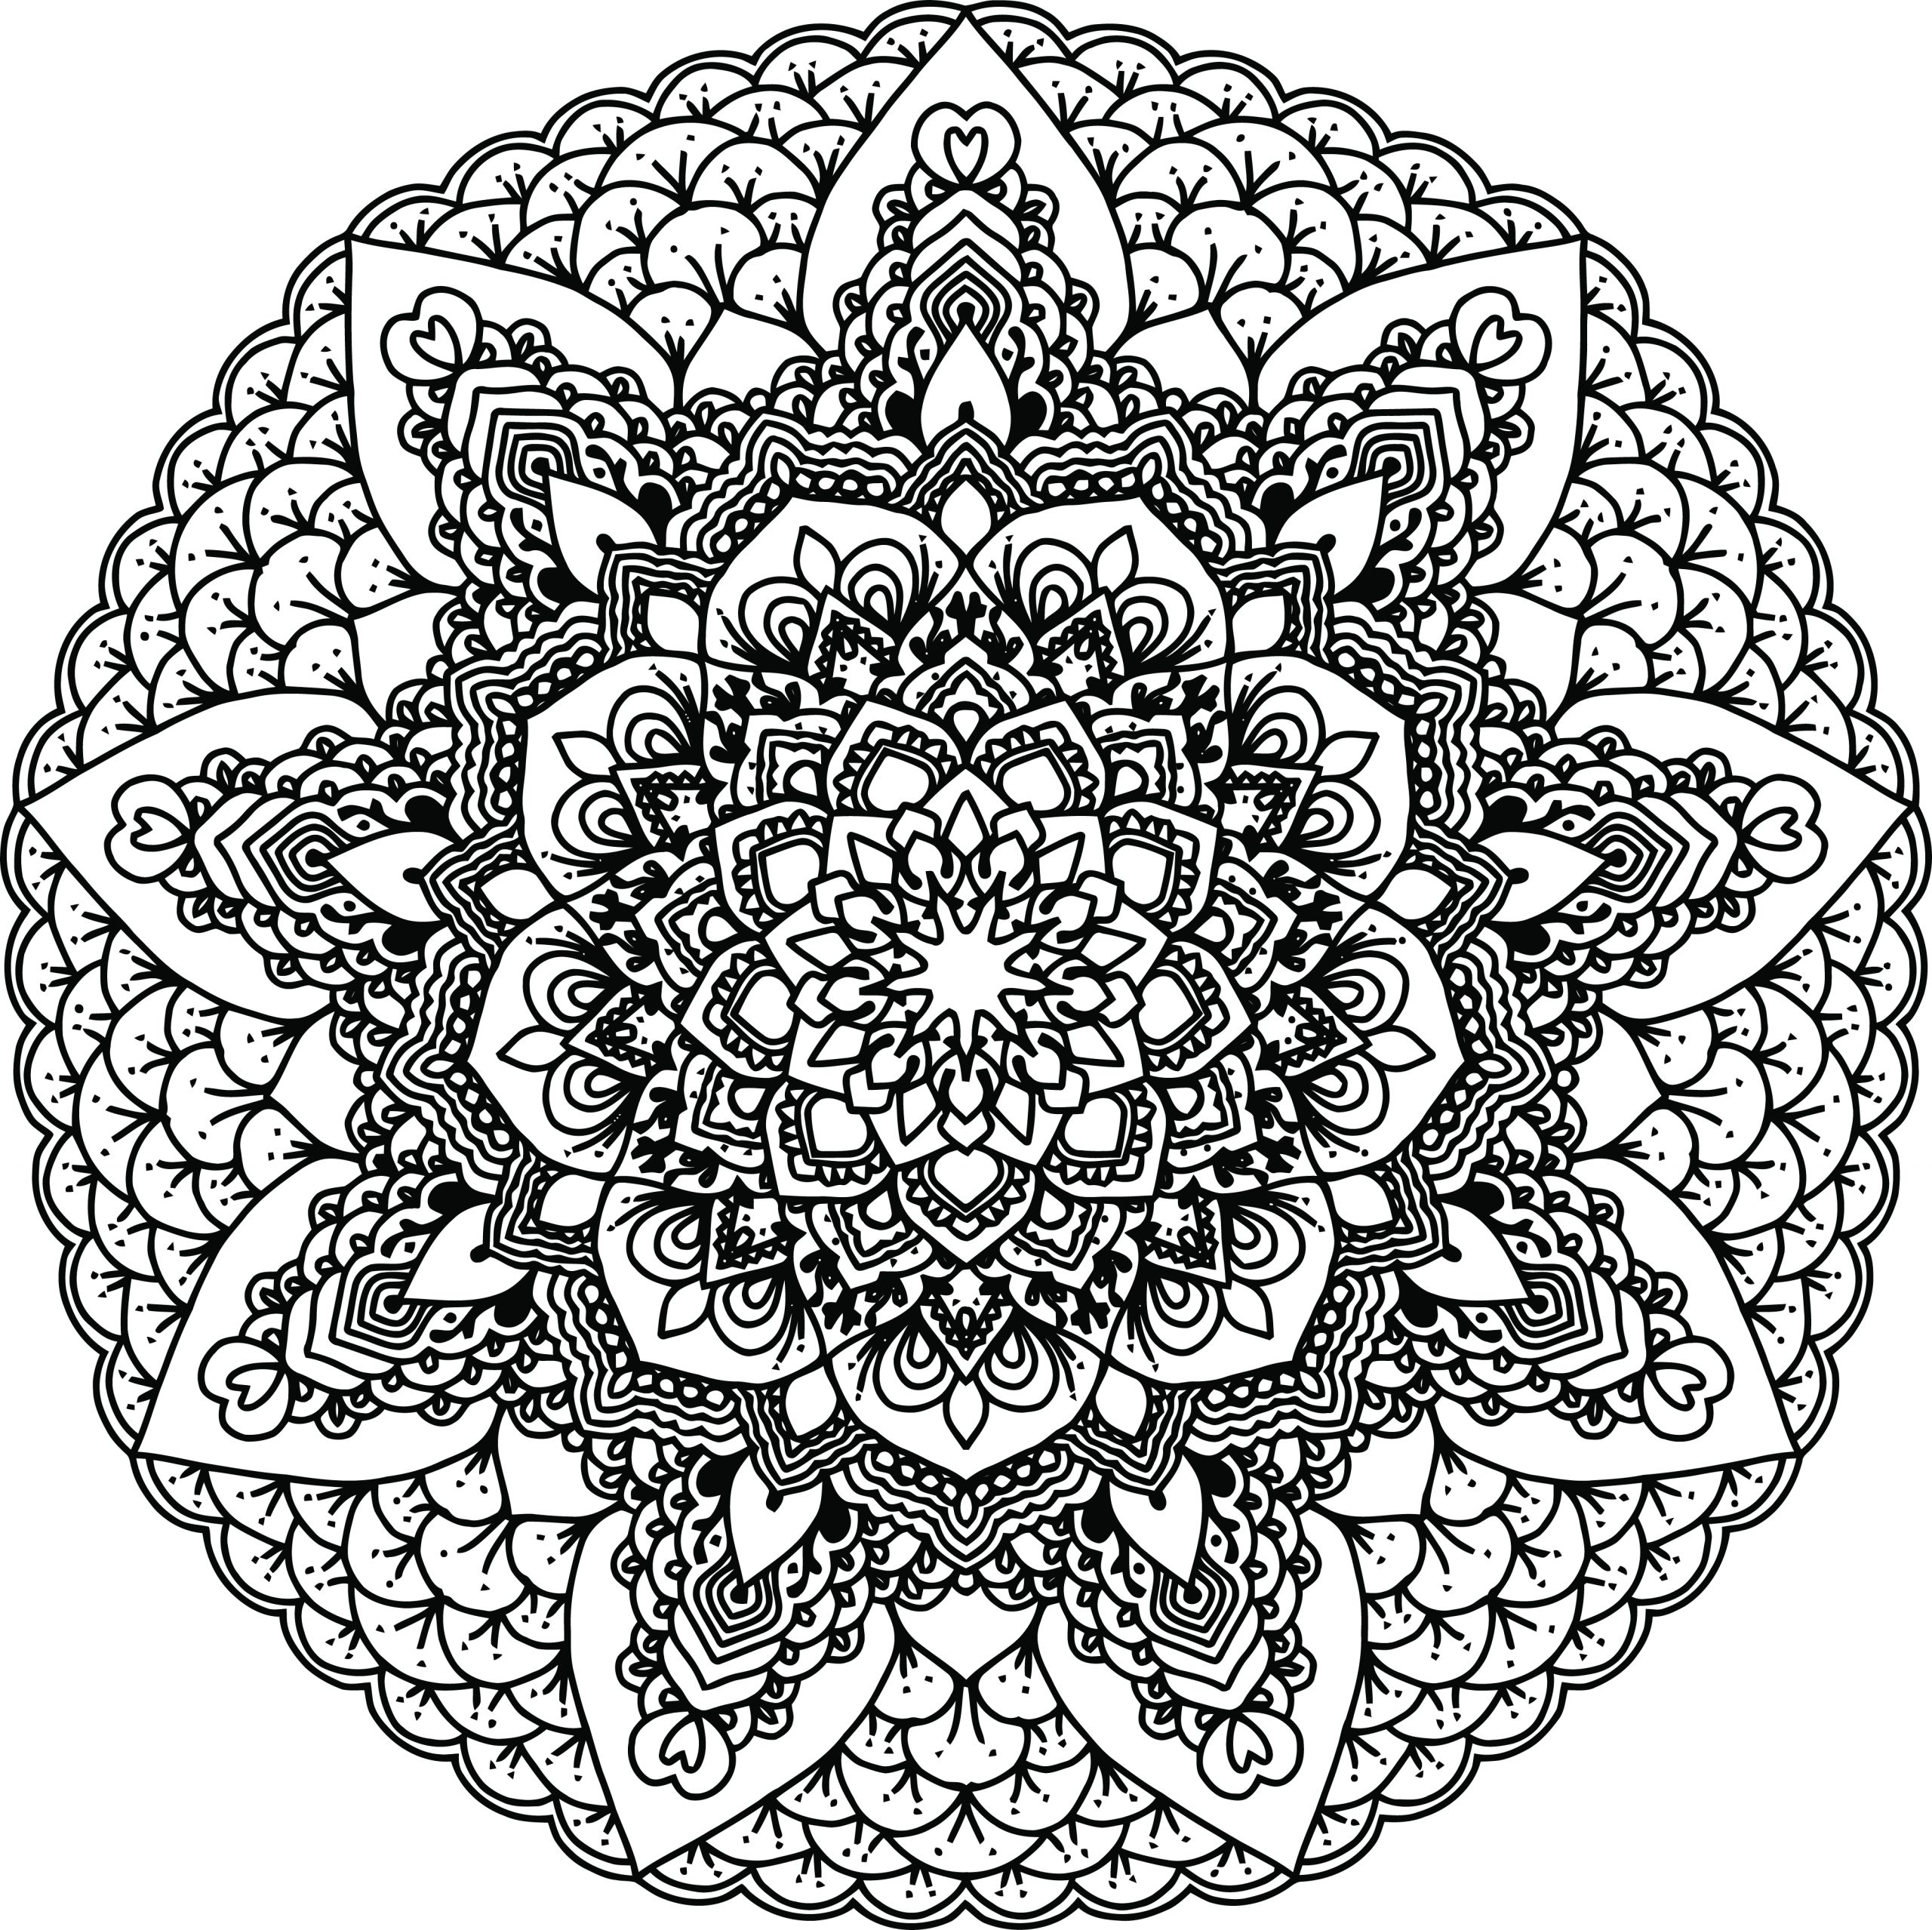 Free Black and White Coloring Pages for Adults Free Clipart A Black and White Adult Coloring Page